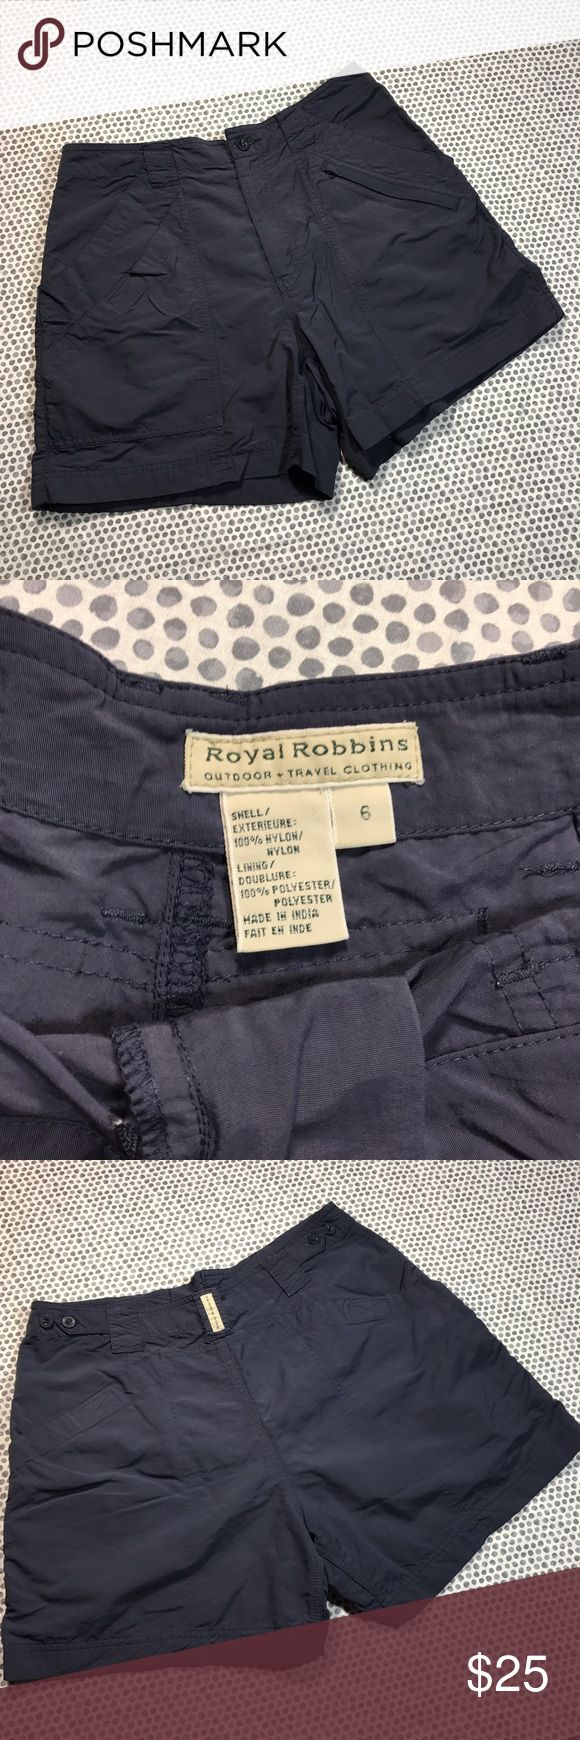 Royal Robbins Gray Outdoor Hiking Shorts w/Pockets * Royal Robbins Outdoor + Travel Clothing Gray Hiking Shorts.  * Size 6.  * Made of 100% nylon. Lining is 100% polyester.  * Pre-owned, but in excellent used condition. No holes, stains or pilling.  * Measurements: Waist laying flat is 14 1/2 inches. Length is 14 1/2 inches. Inseam is 4 1/2 inches. Rise is 10 1/2 inches. Royal Robbins Shorts